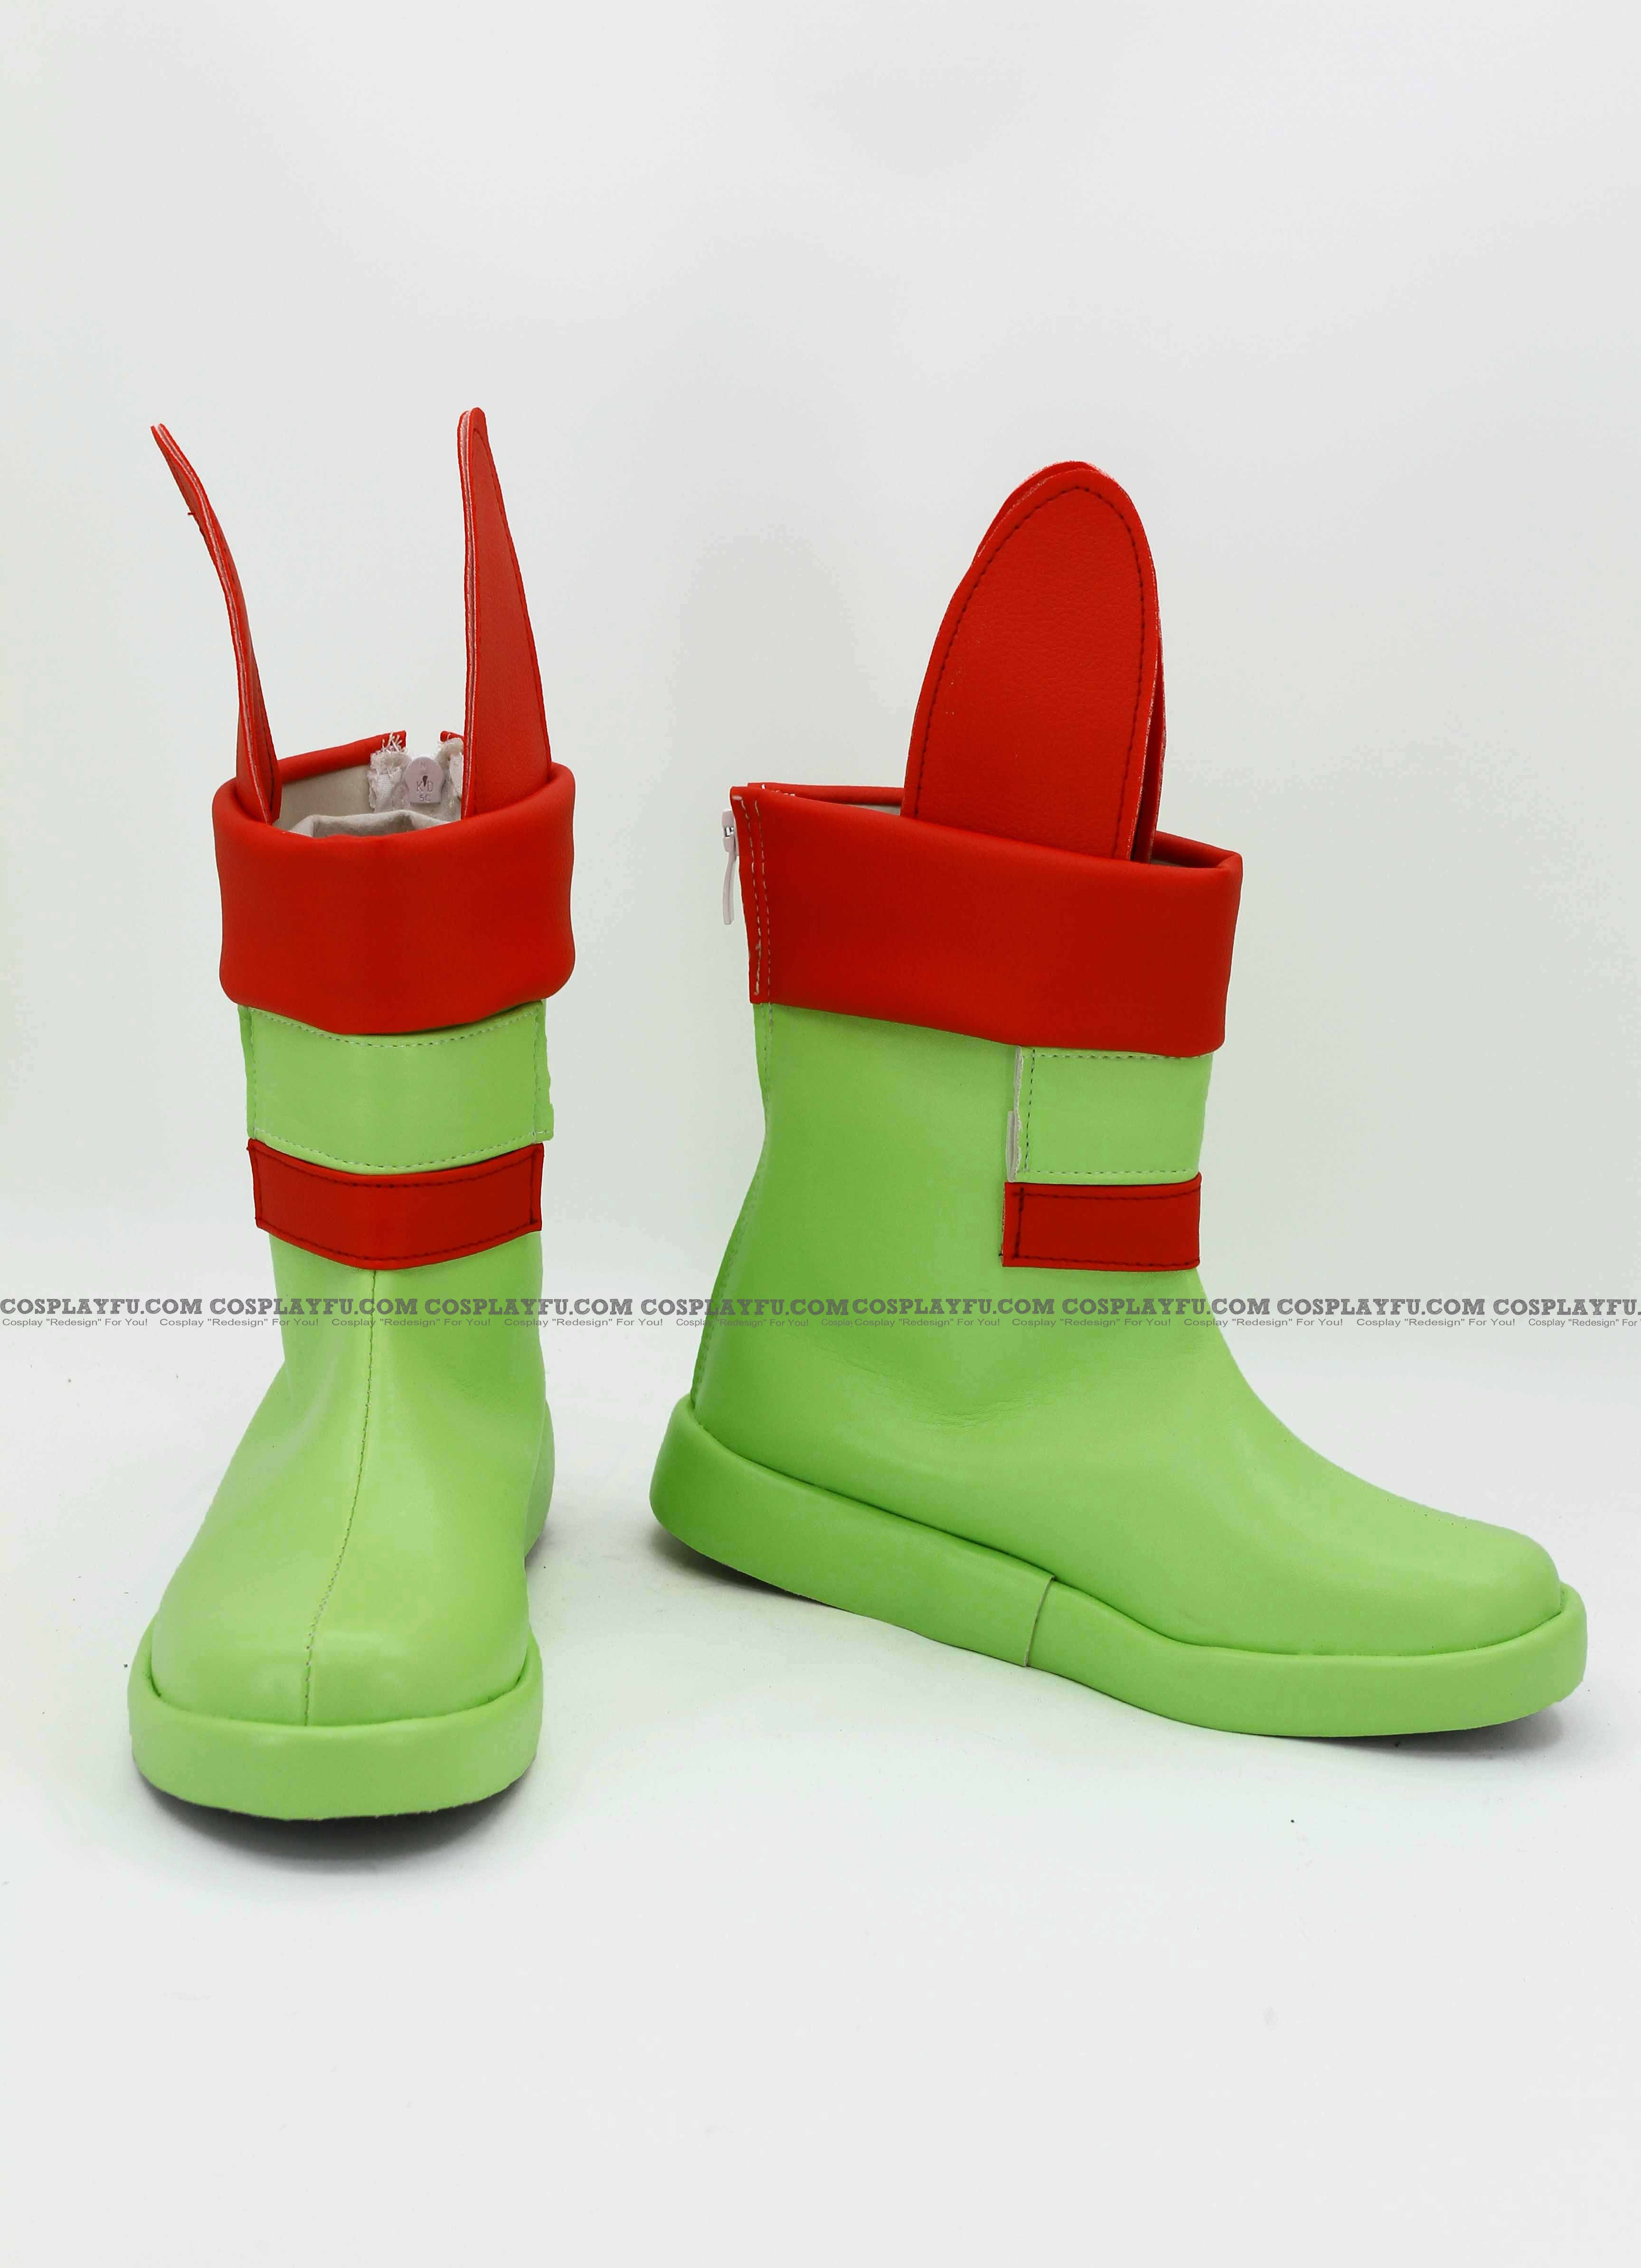 Elpeo Shoes from Mobile Suit Gundam ZZ